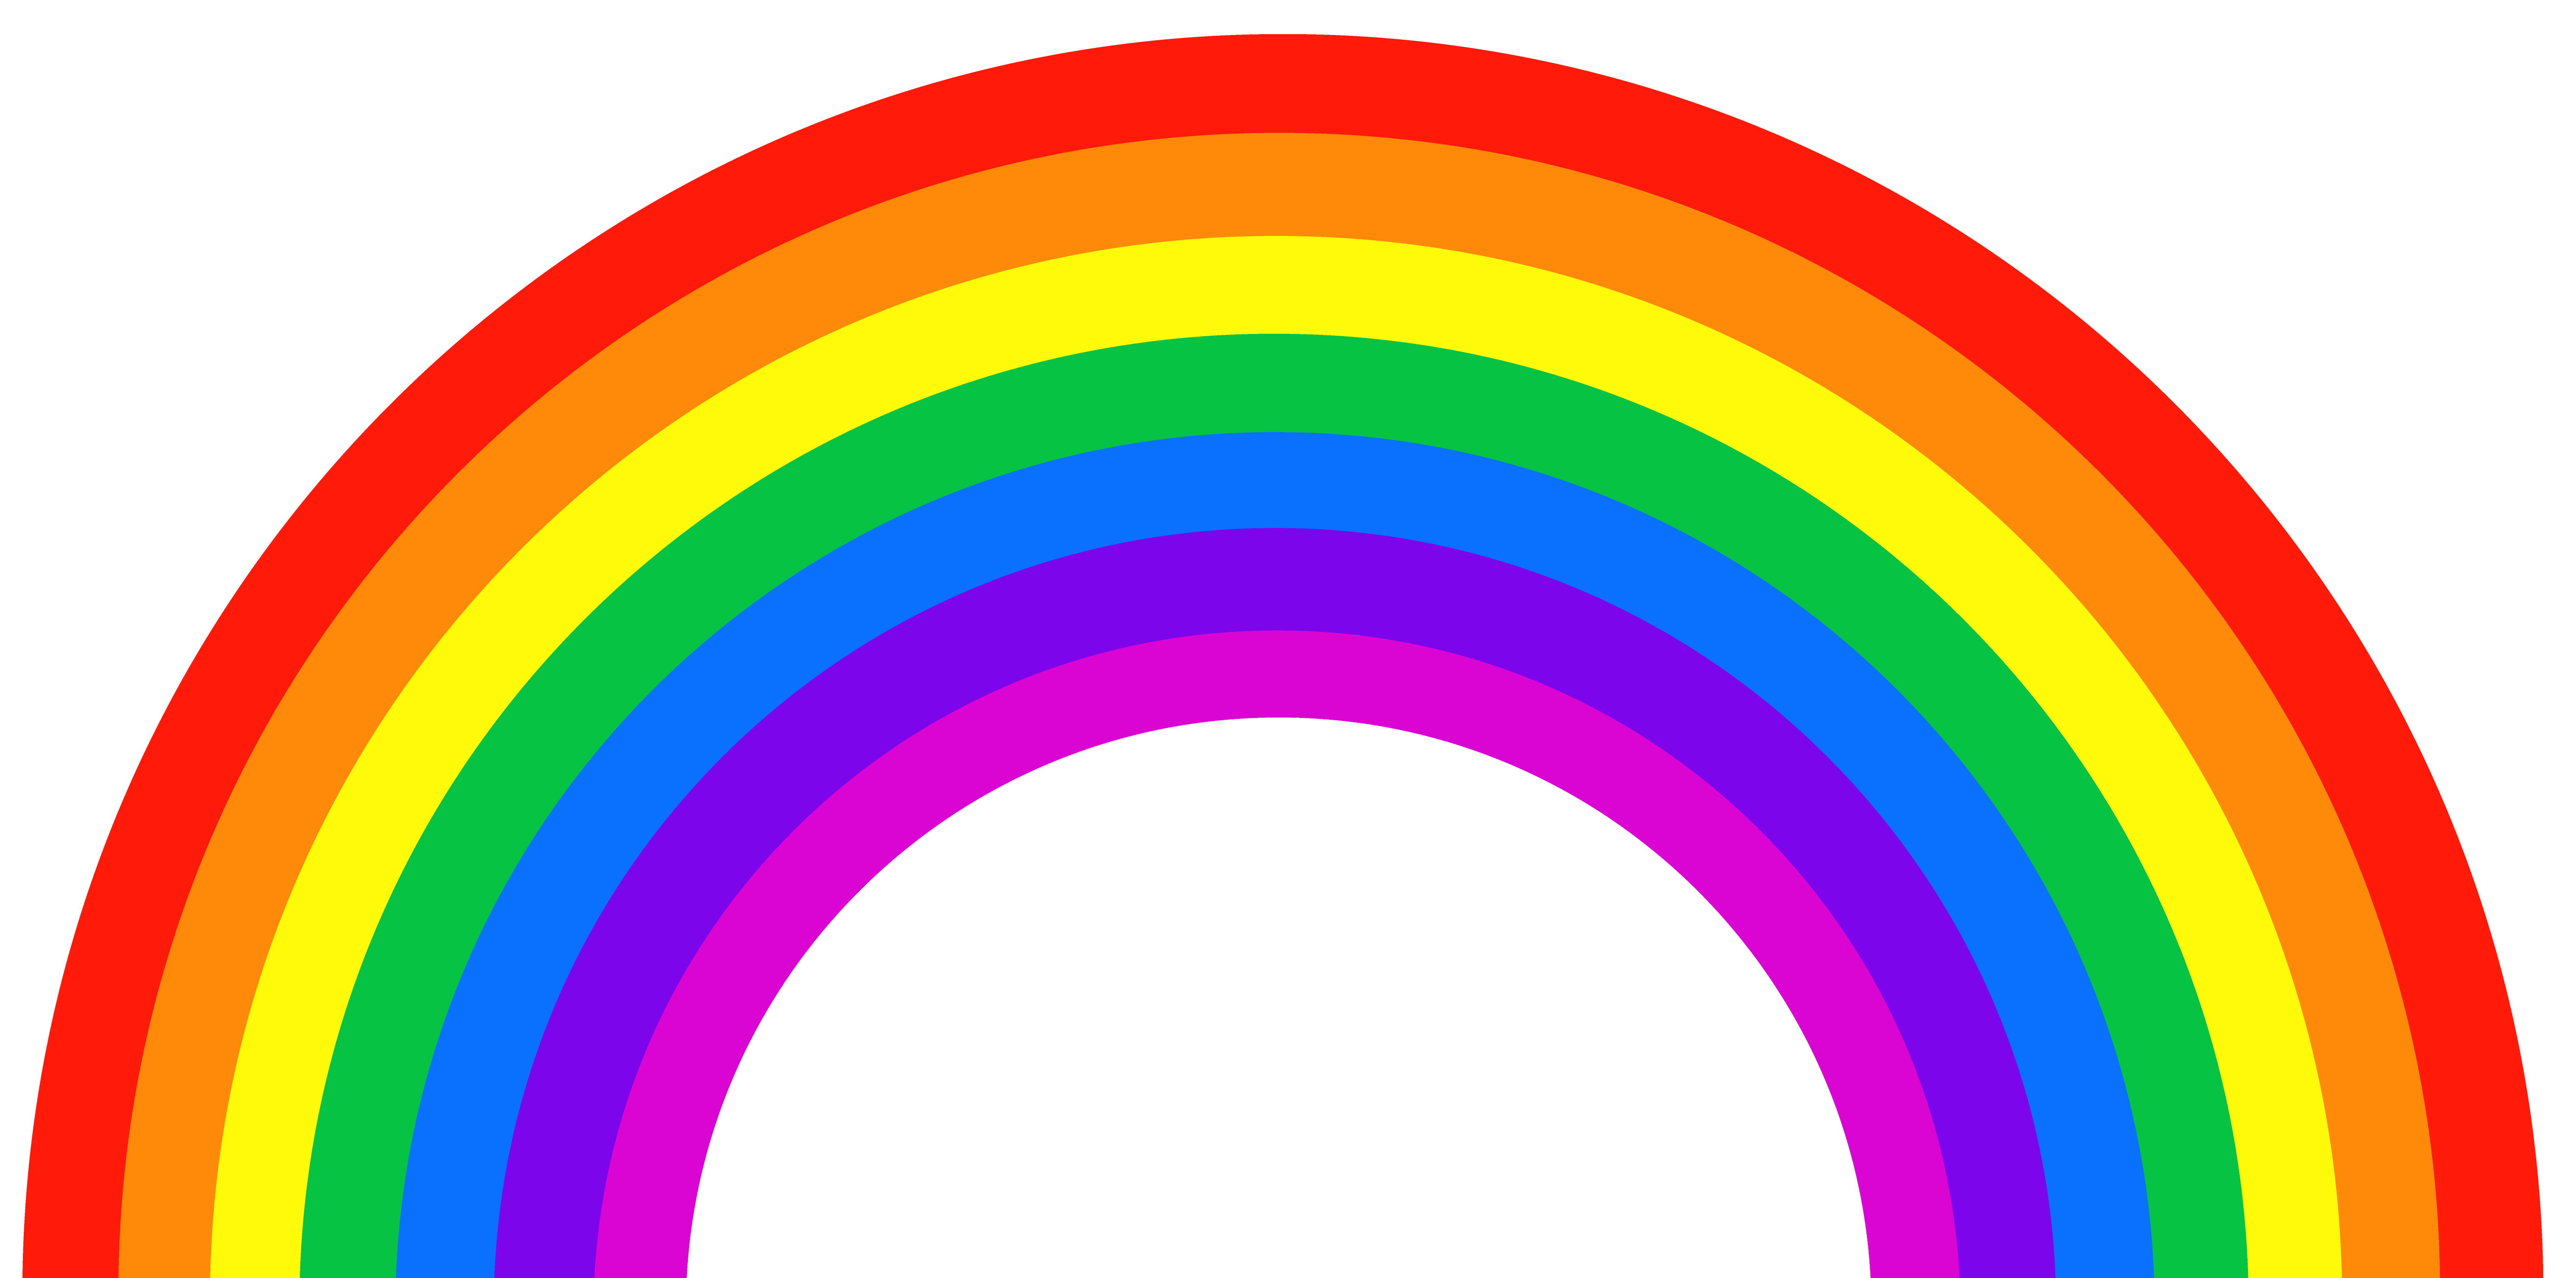 Cartoon rainbow png. Clipart picture gallery yopriceville